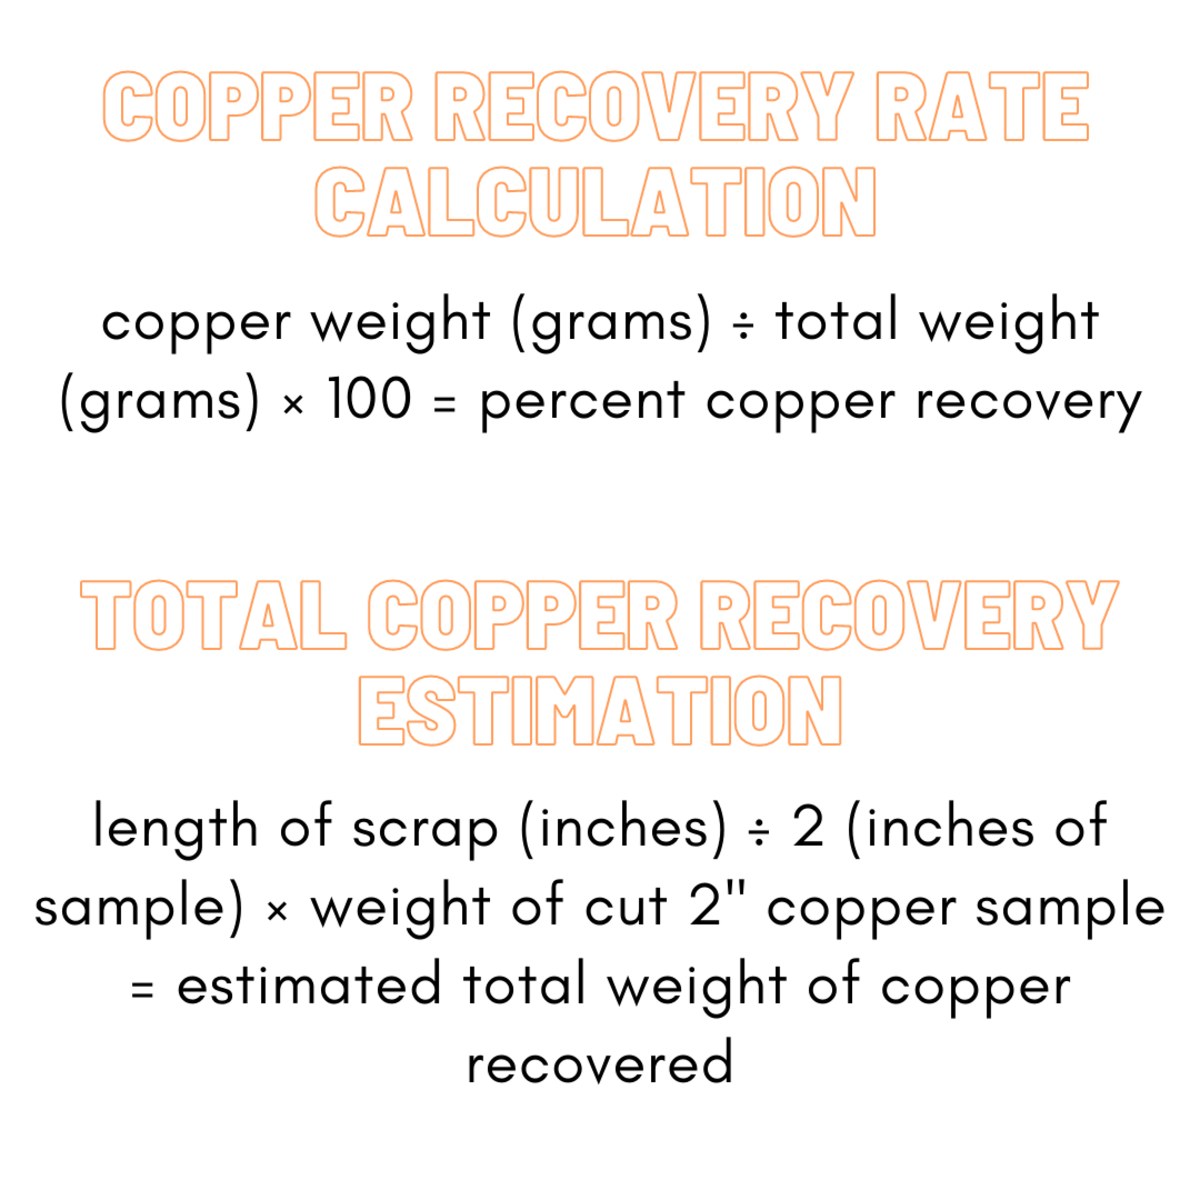 You can calculate the copper recovery rate for any insulated cable and estimate the total copper recovery rate.